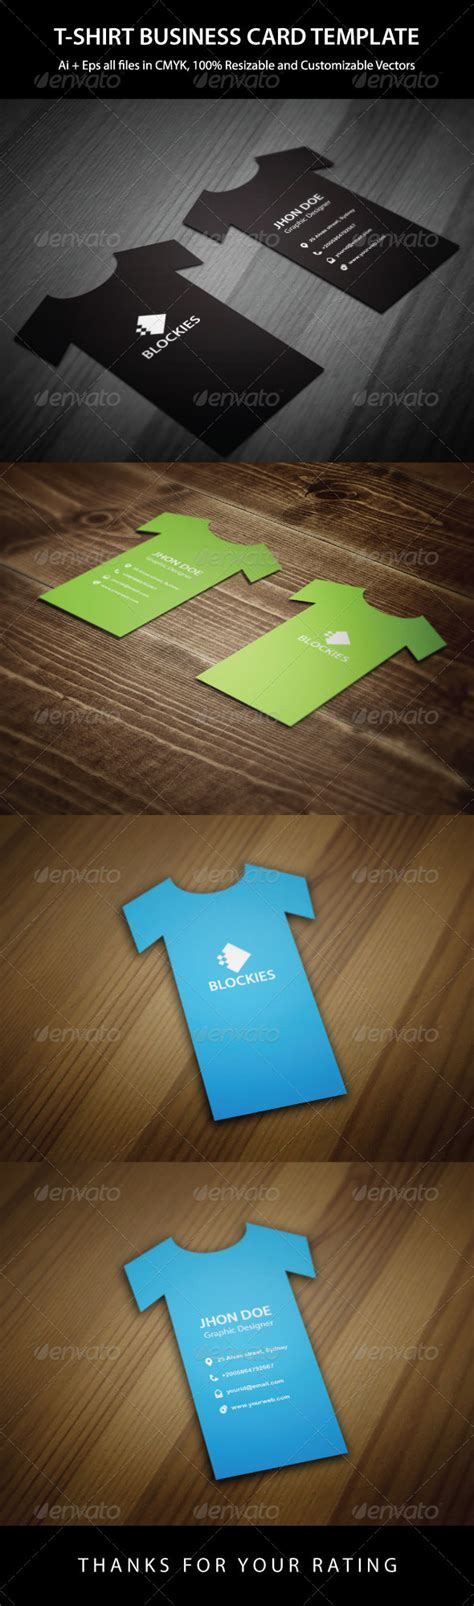 t shirt business card template t shirt business card template by kazierfan graphicriver